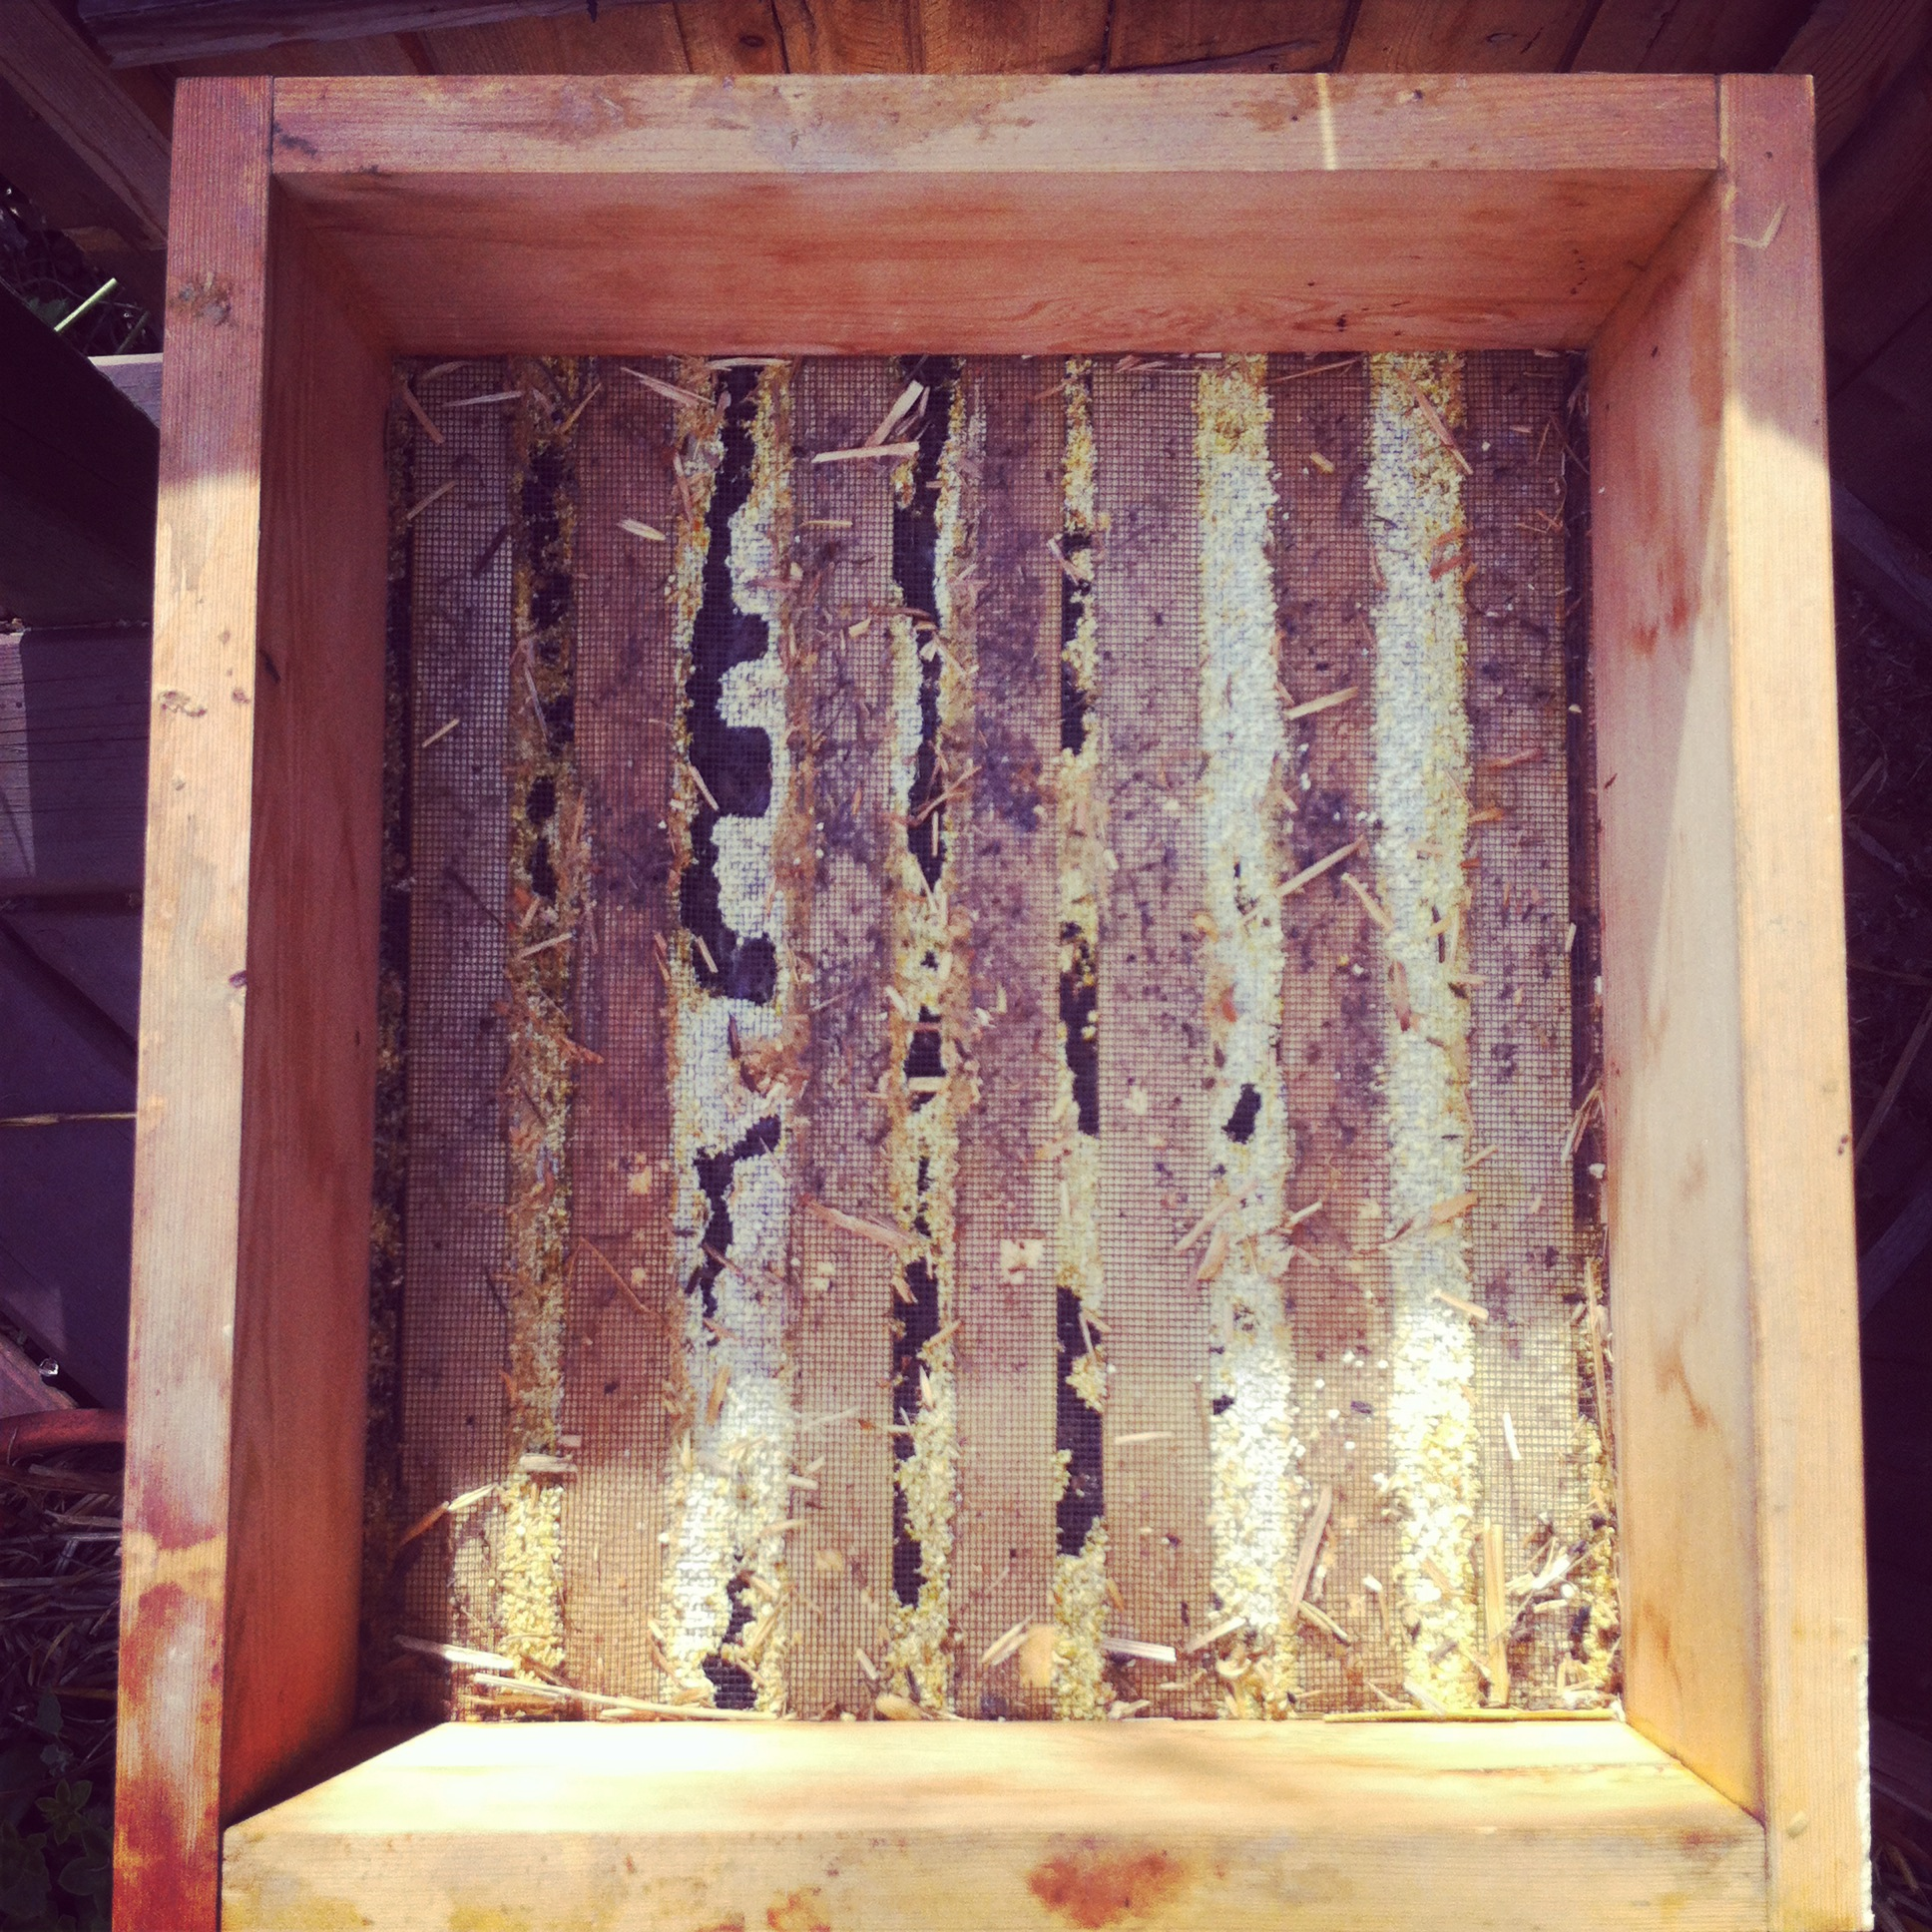 Warre Hive, Quilt Top Layer, Hive Ventilation Regulated With Propolis